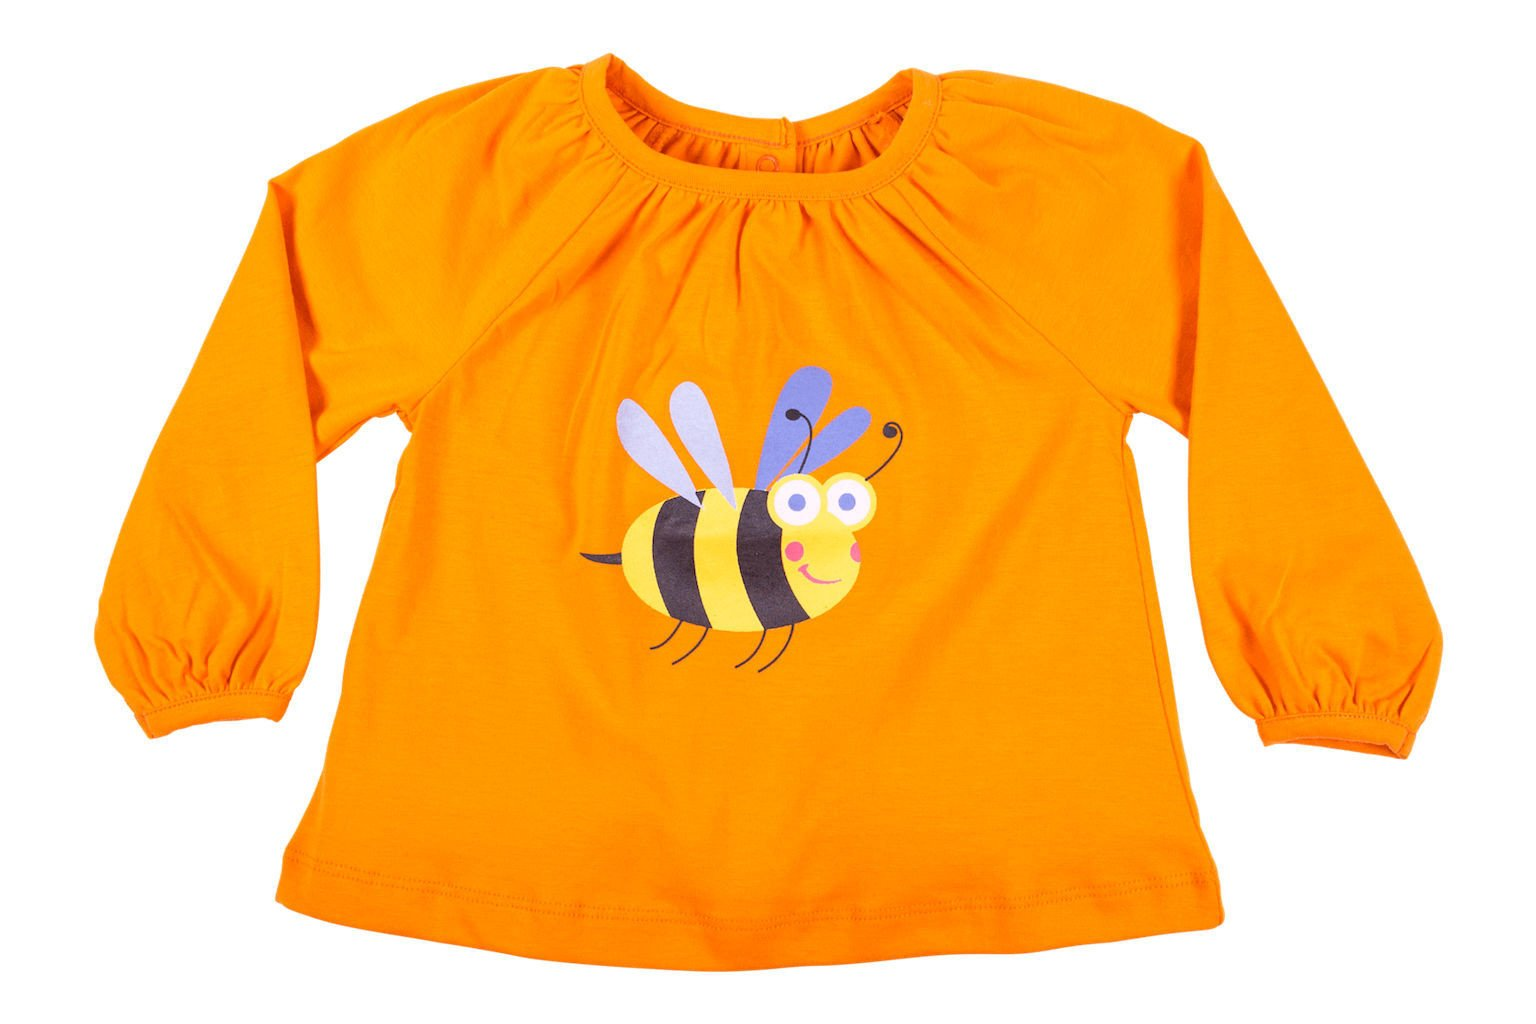 Orange Bumblebee Top - HUGABUG